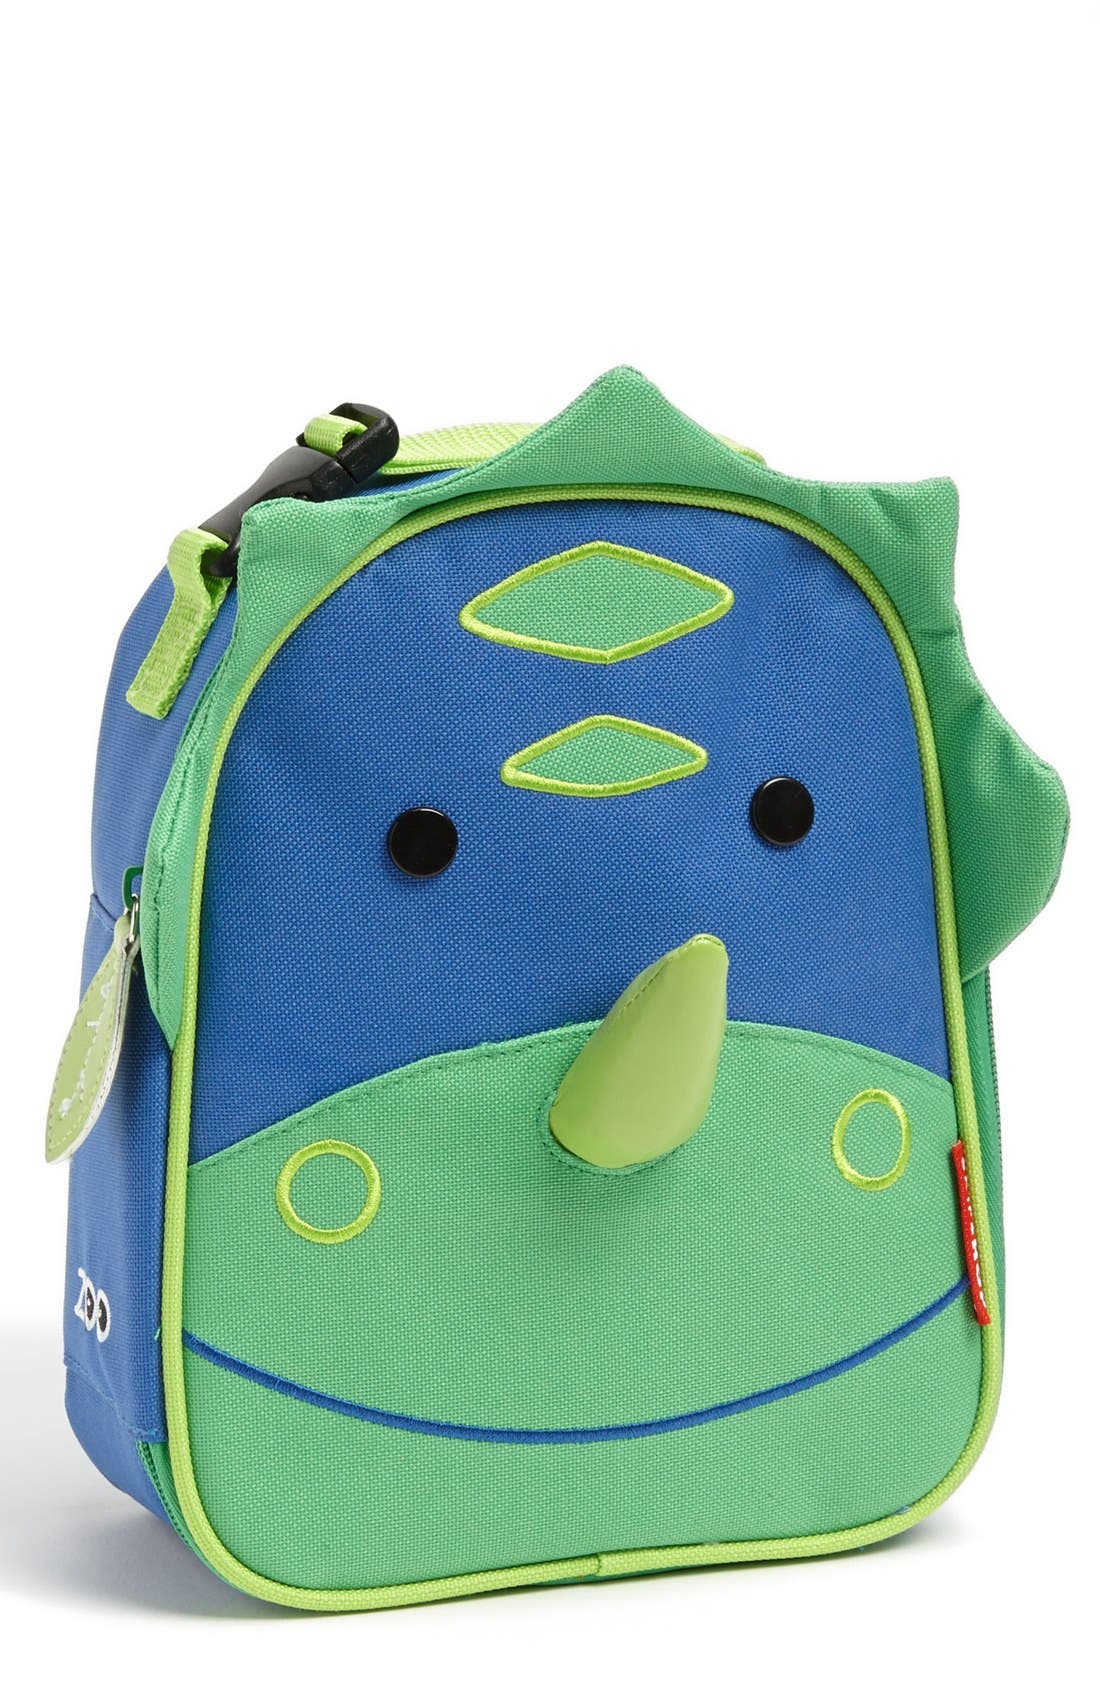 Zoo Lunch Bag,                         Main,                         color, BLUE